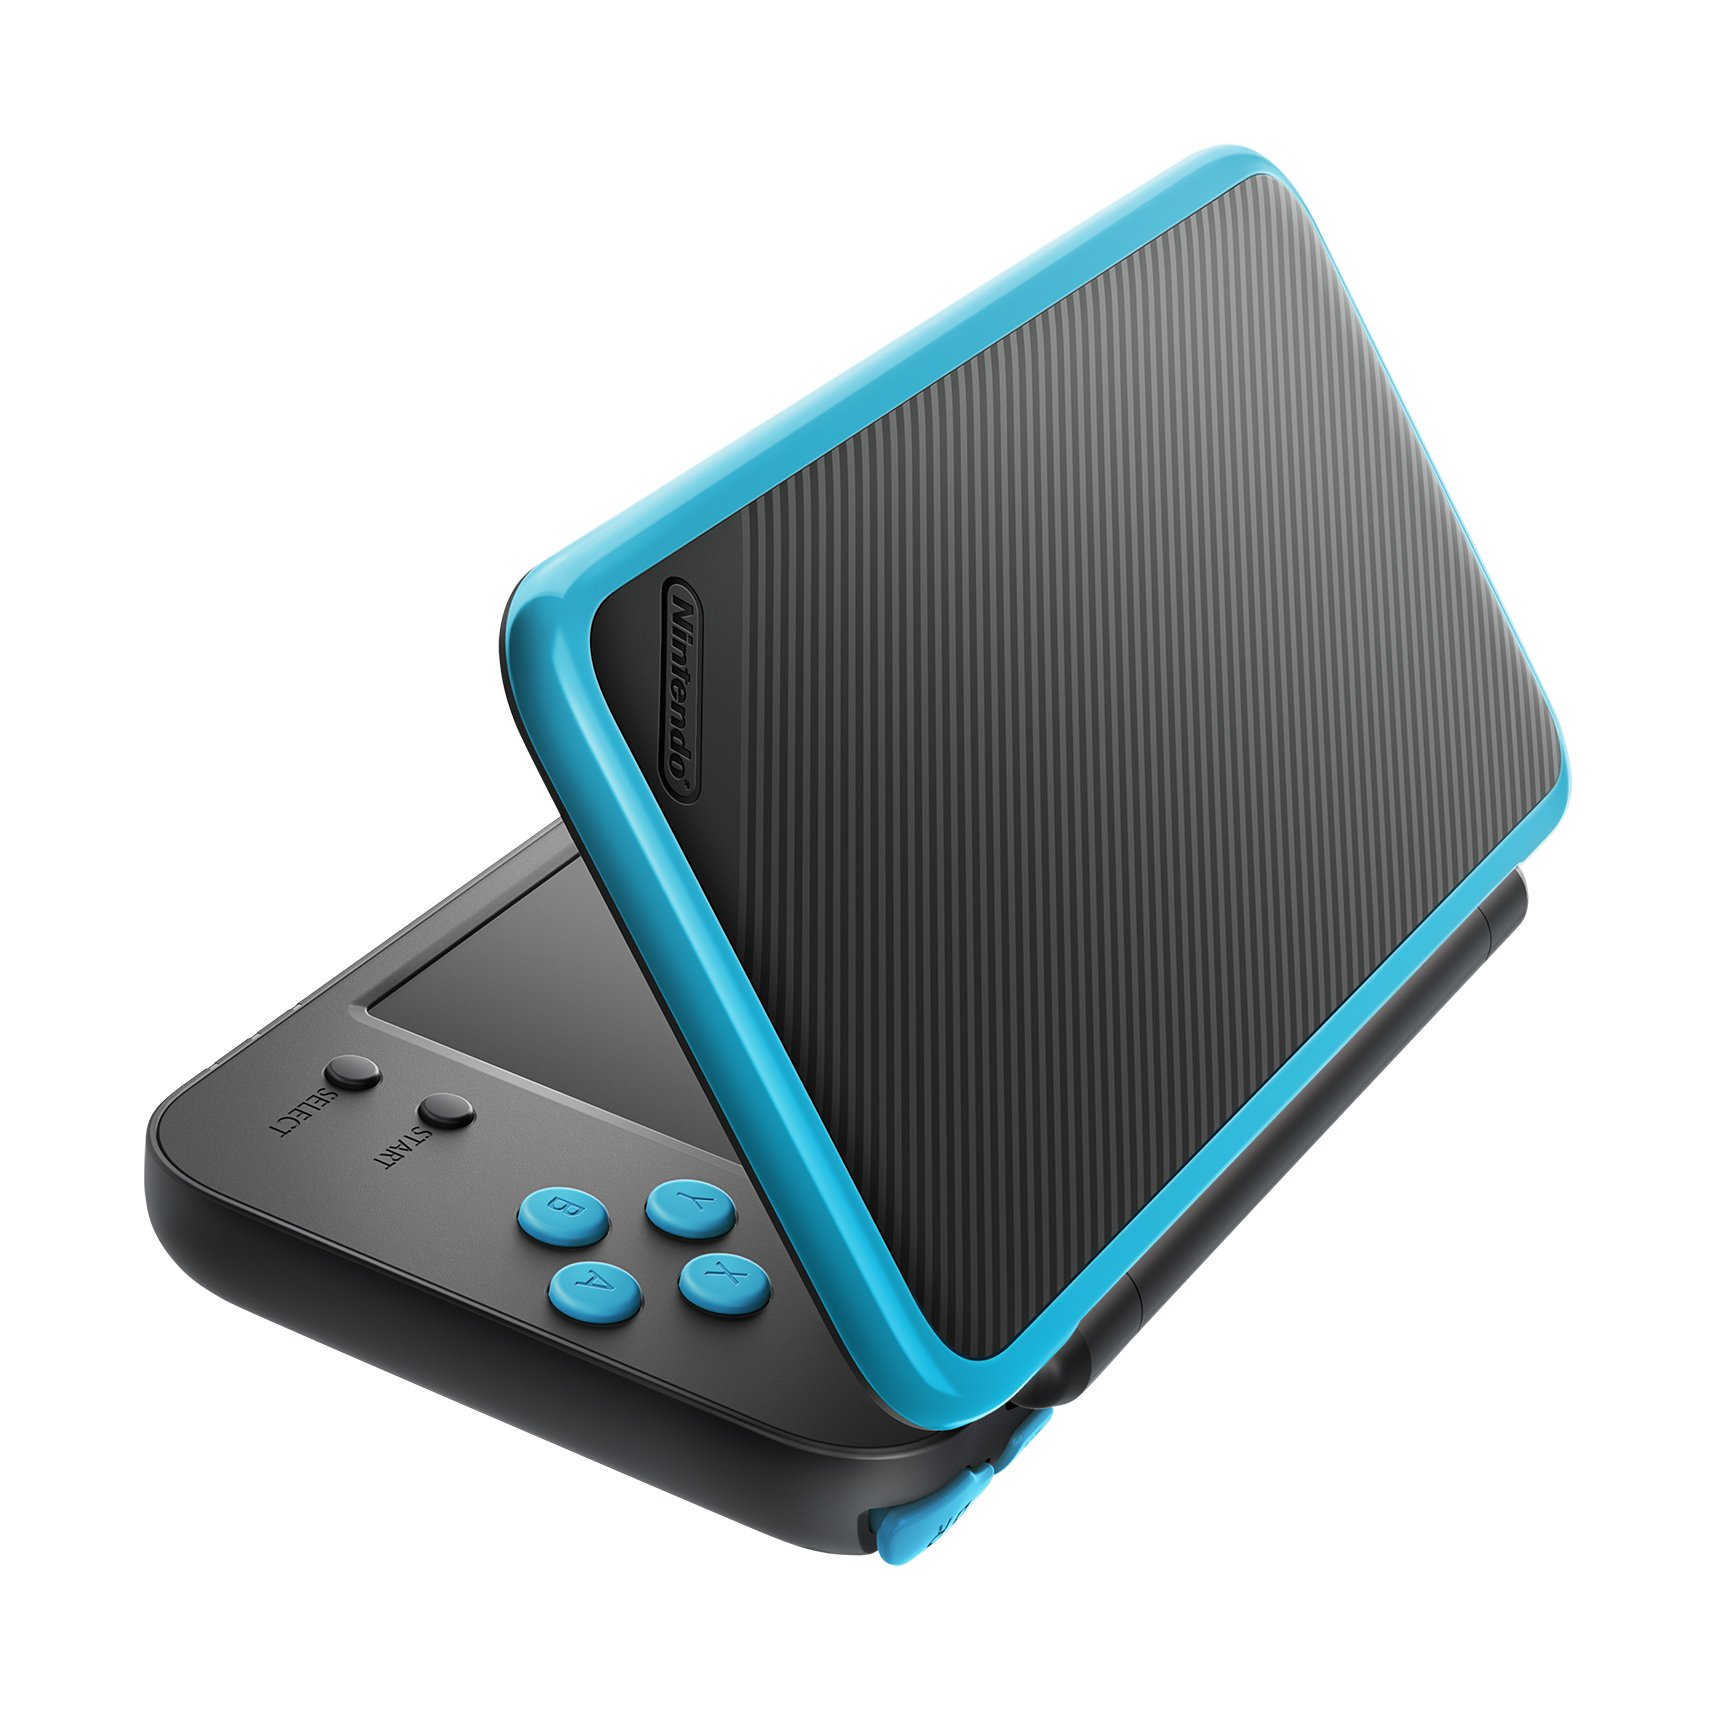 New Nintendo 2DS XL - Black + Turquoise With Mario Kart 7 Pre-installed - Nintendo 2DS by Nintendo (Image #6)